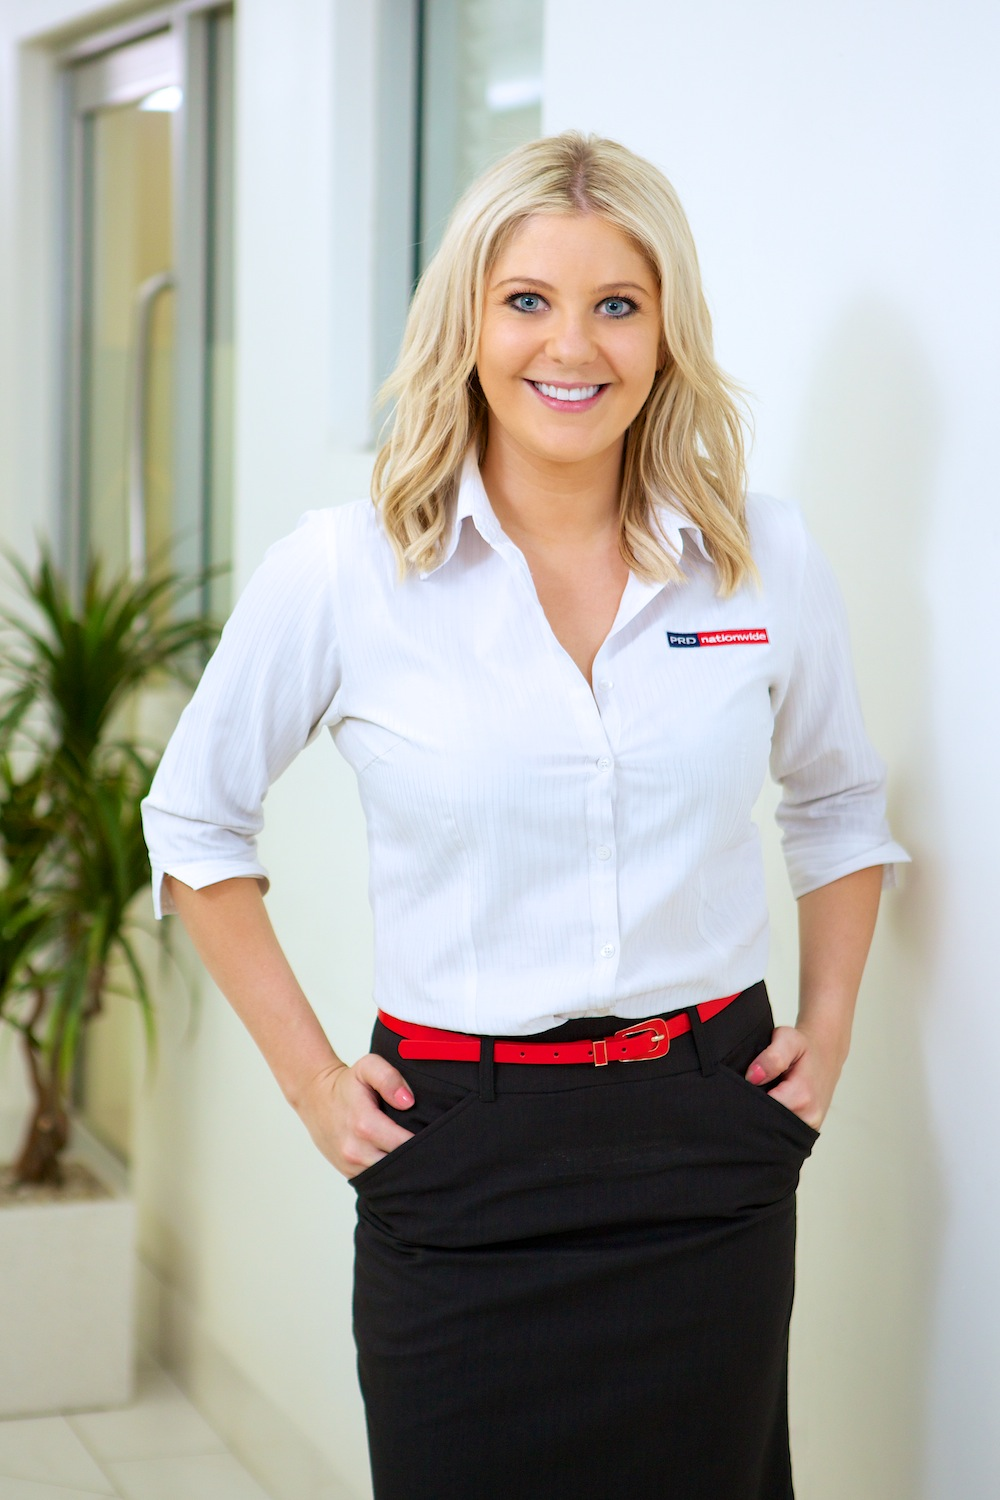 Corporate Head Shots Photographer Brisbane Gold Coast Event Photographer.jpg